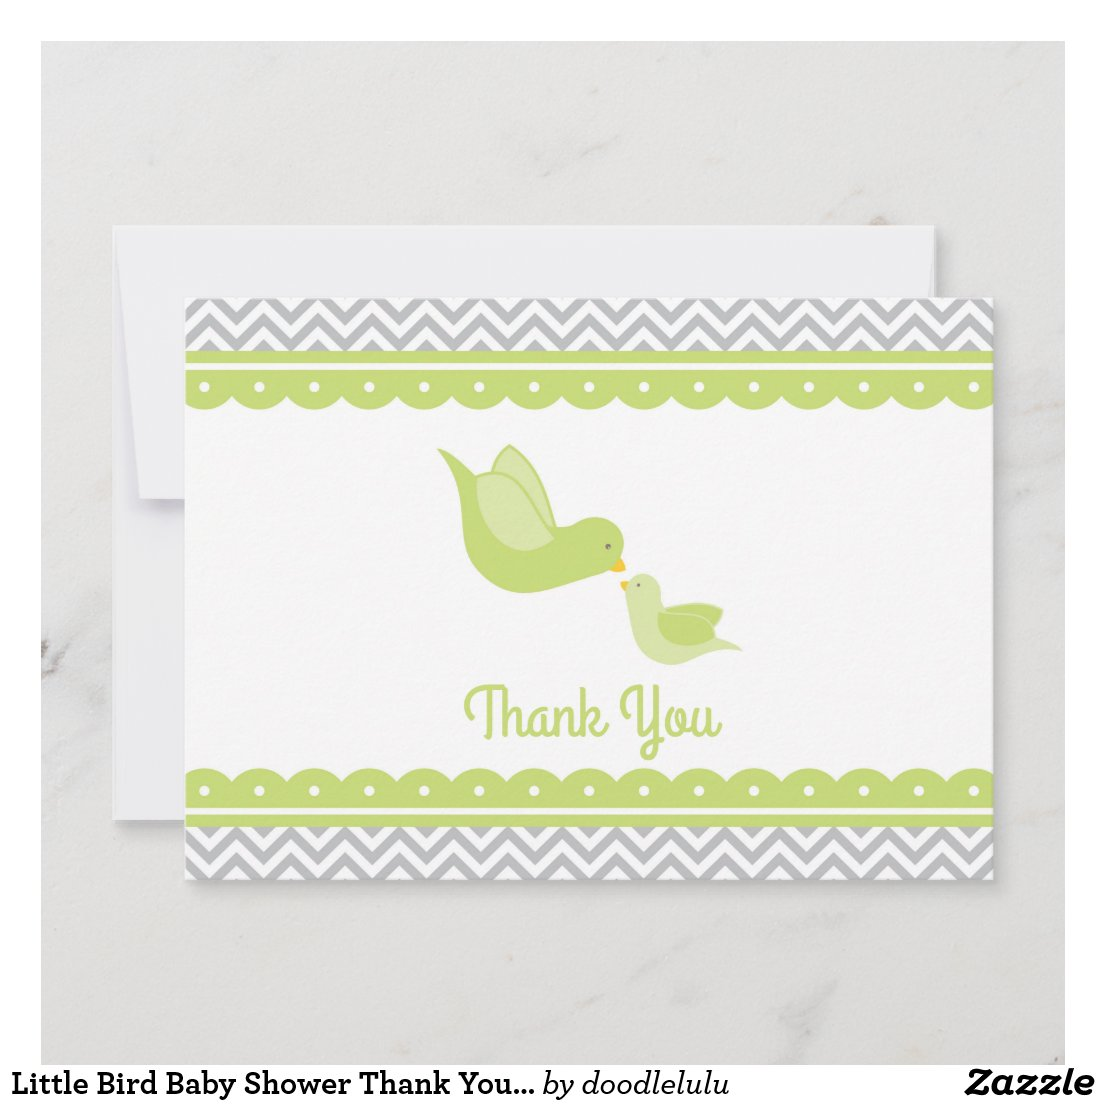 Little Bird Baby Shower Thank You green gray